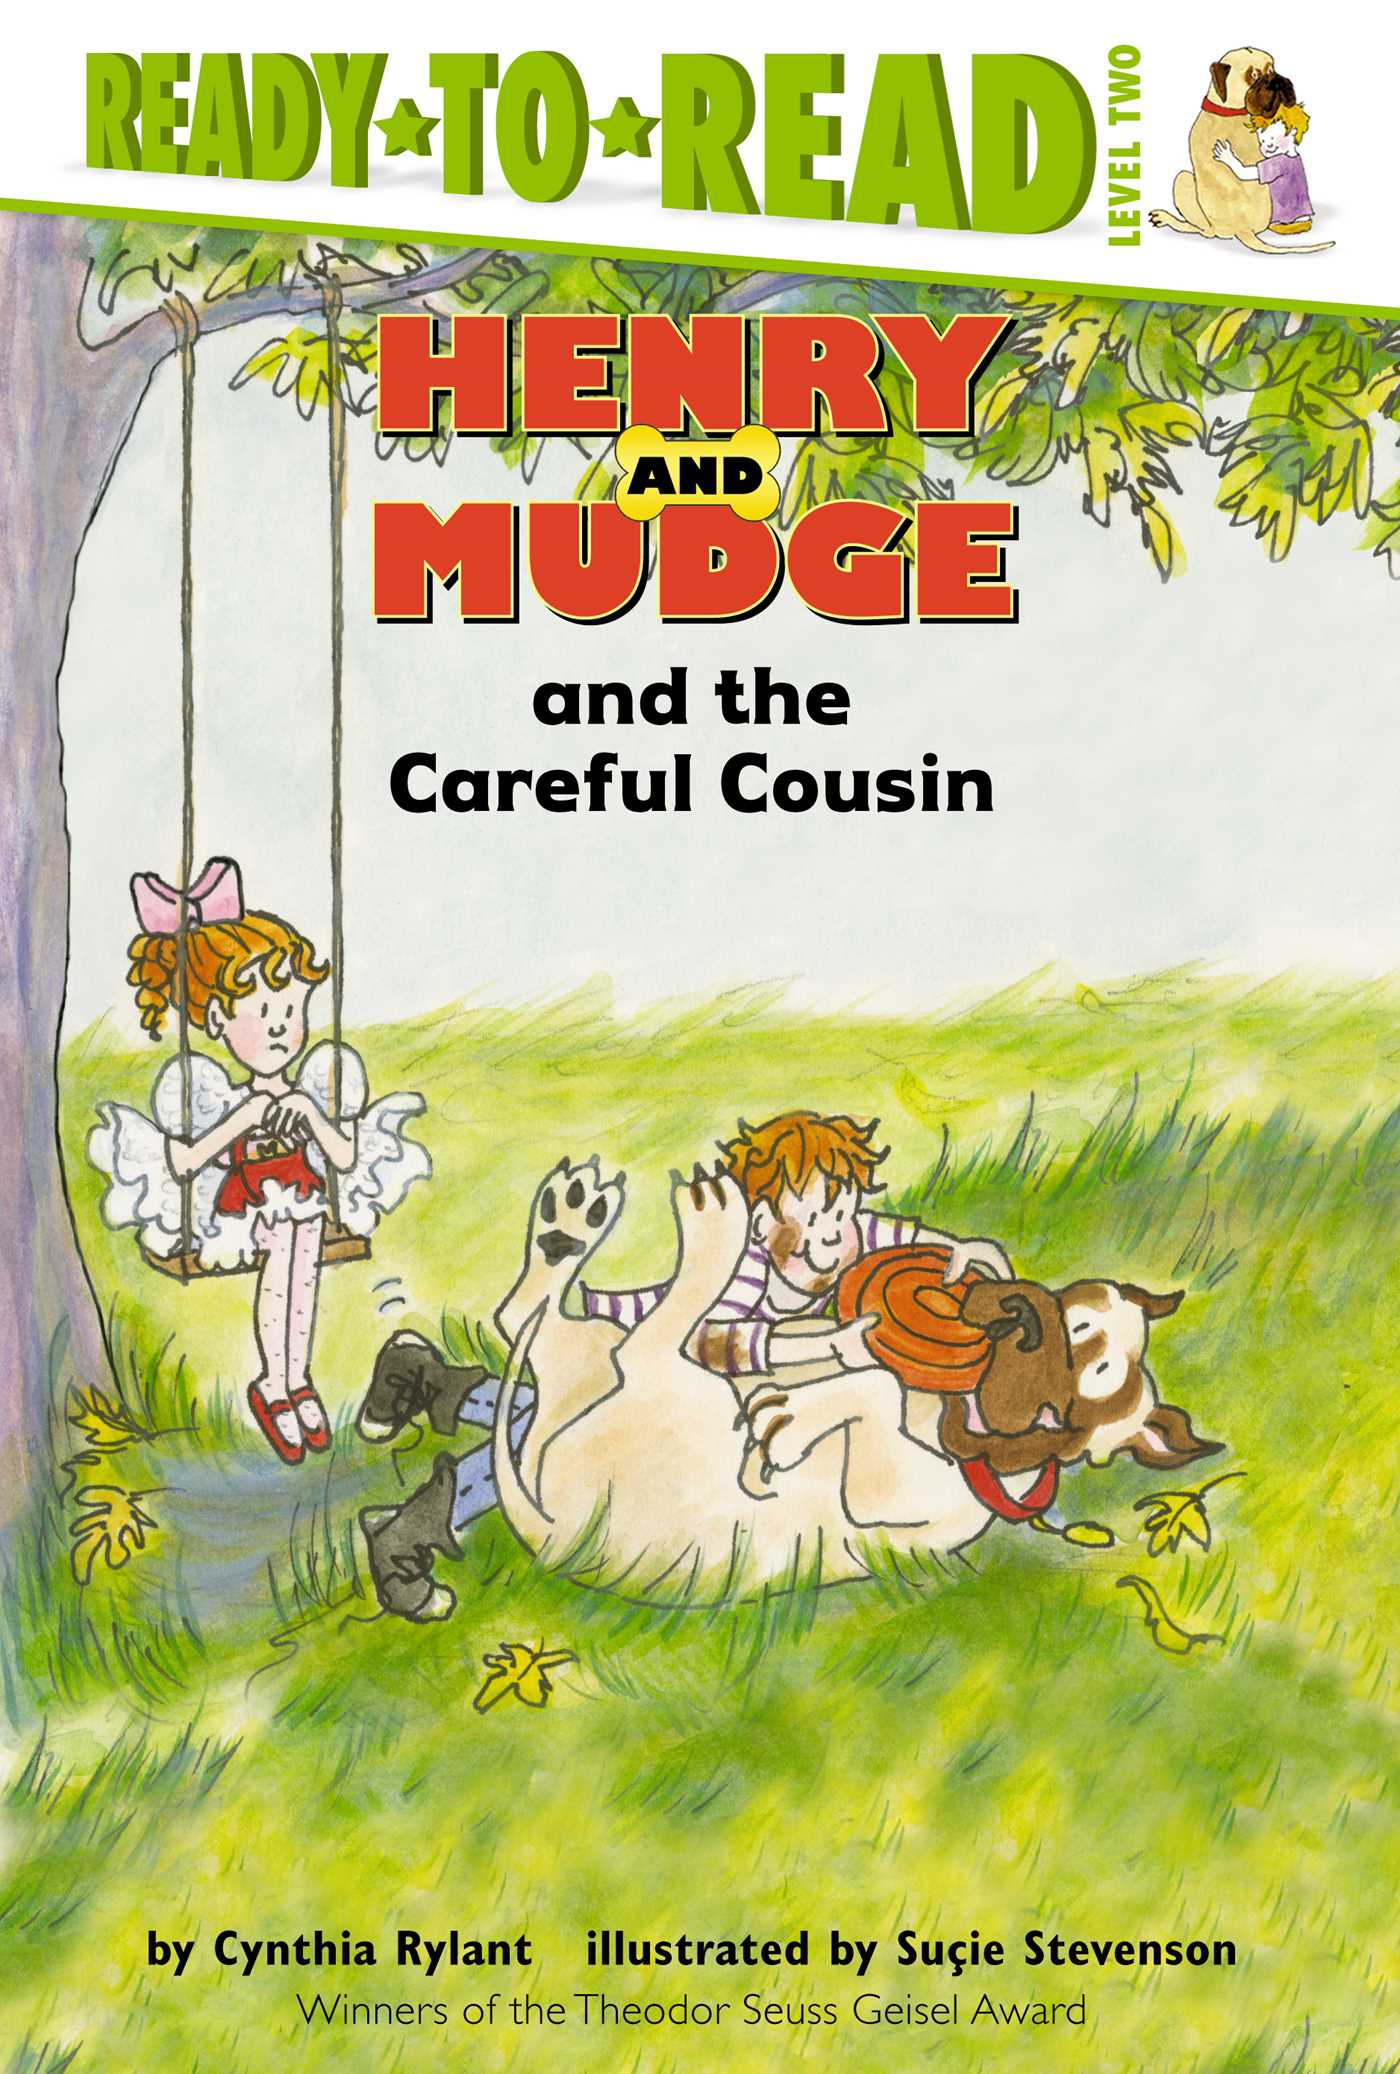 Henry and mudge and the careful cousin 9781442441187 hr